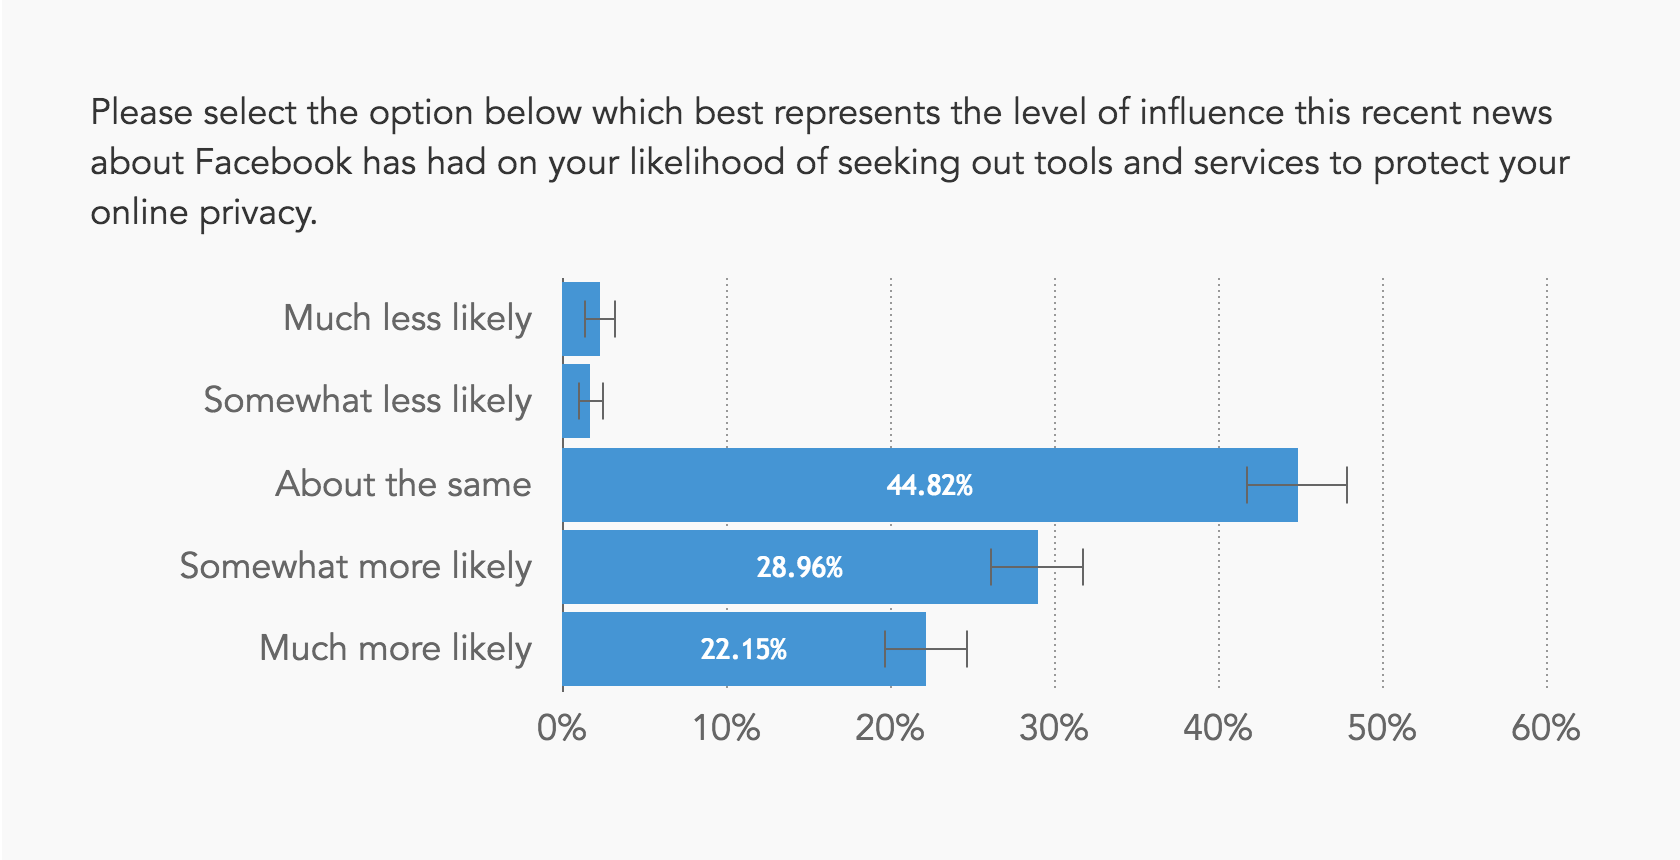 Chart showing roughly half of respondents are now more likely to seek tools and services to protect their privacy online